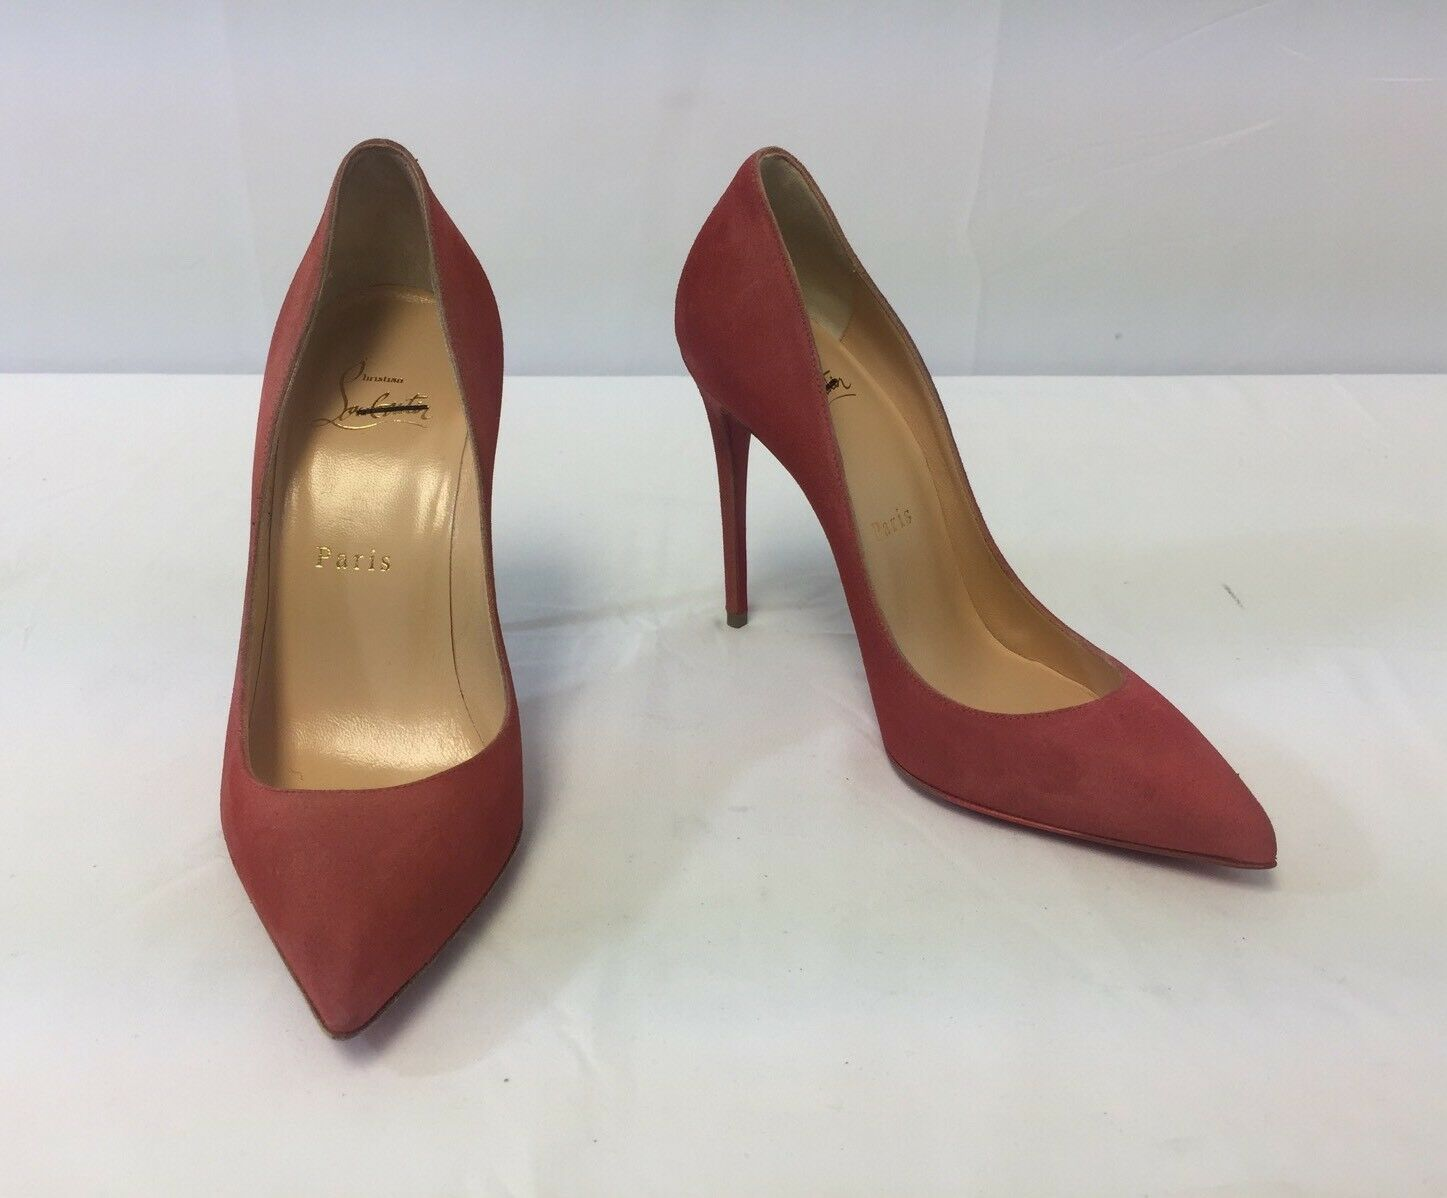 New Christian Louboutin Pigalle Follies Suede Point-Toe Point-Toe Suede Pumps Size 36/6 $675.00 8d2652